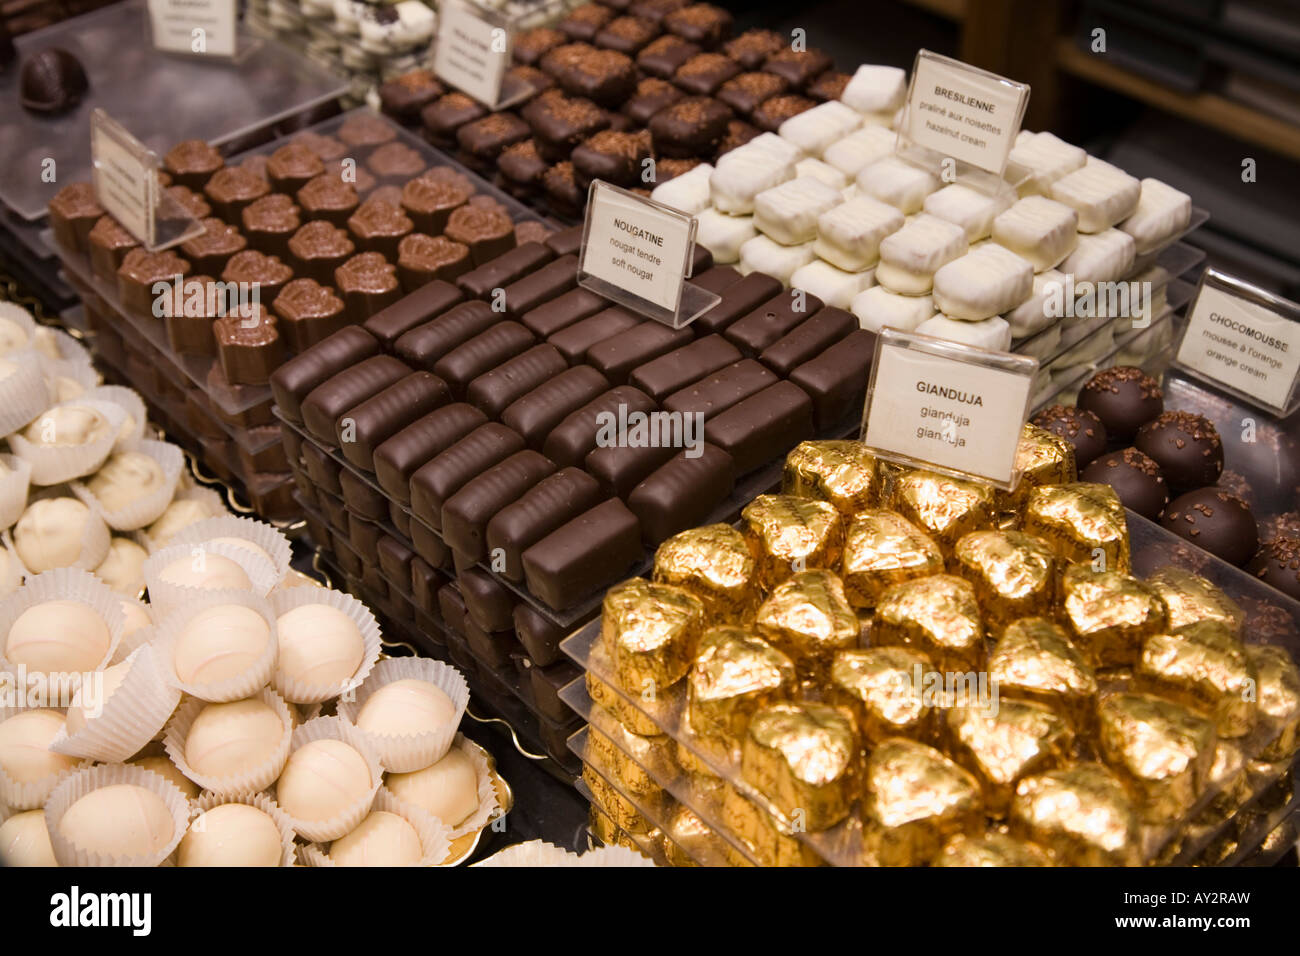 Chocolate Shop Grand Place Stock Photos & Chocolate Shop Grand ...